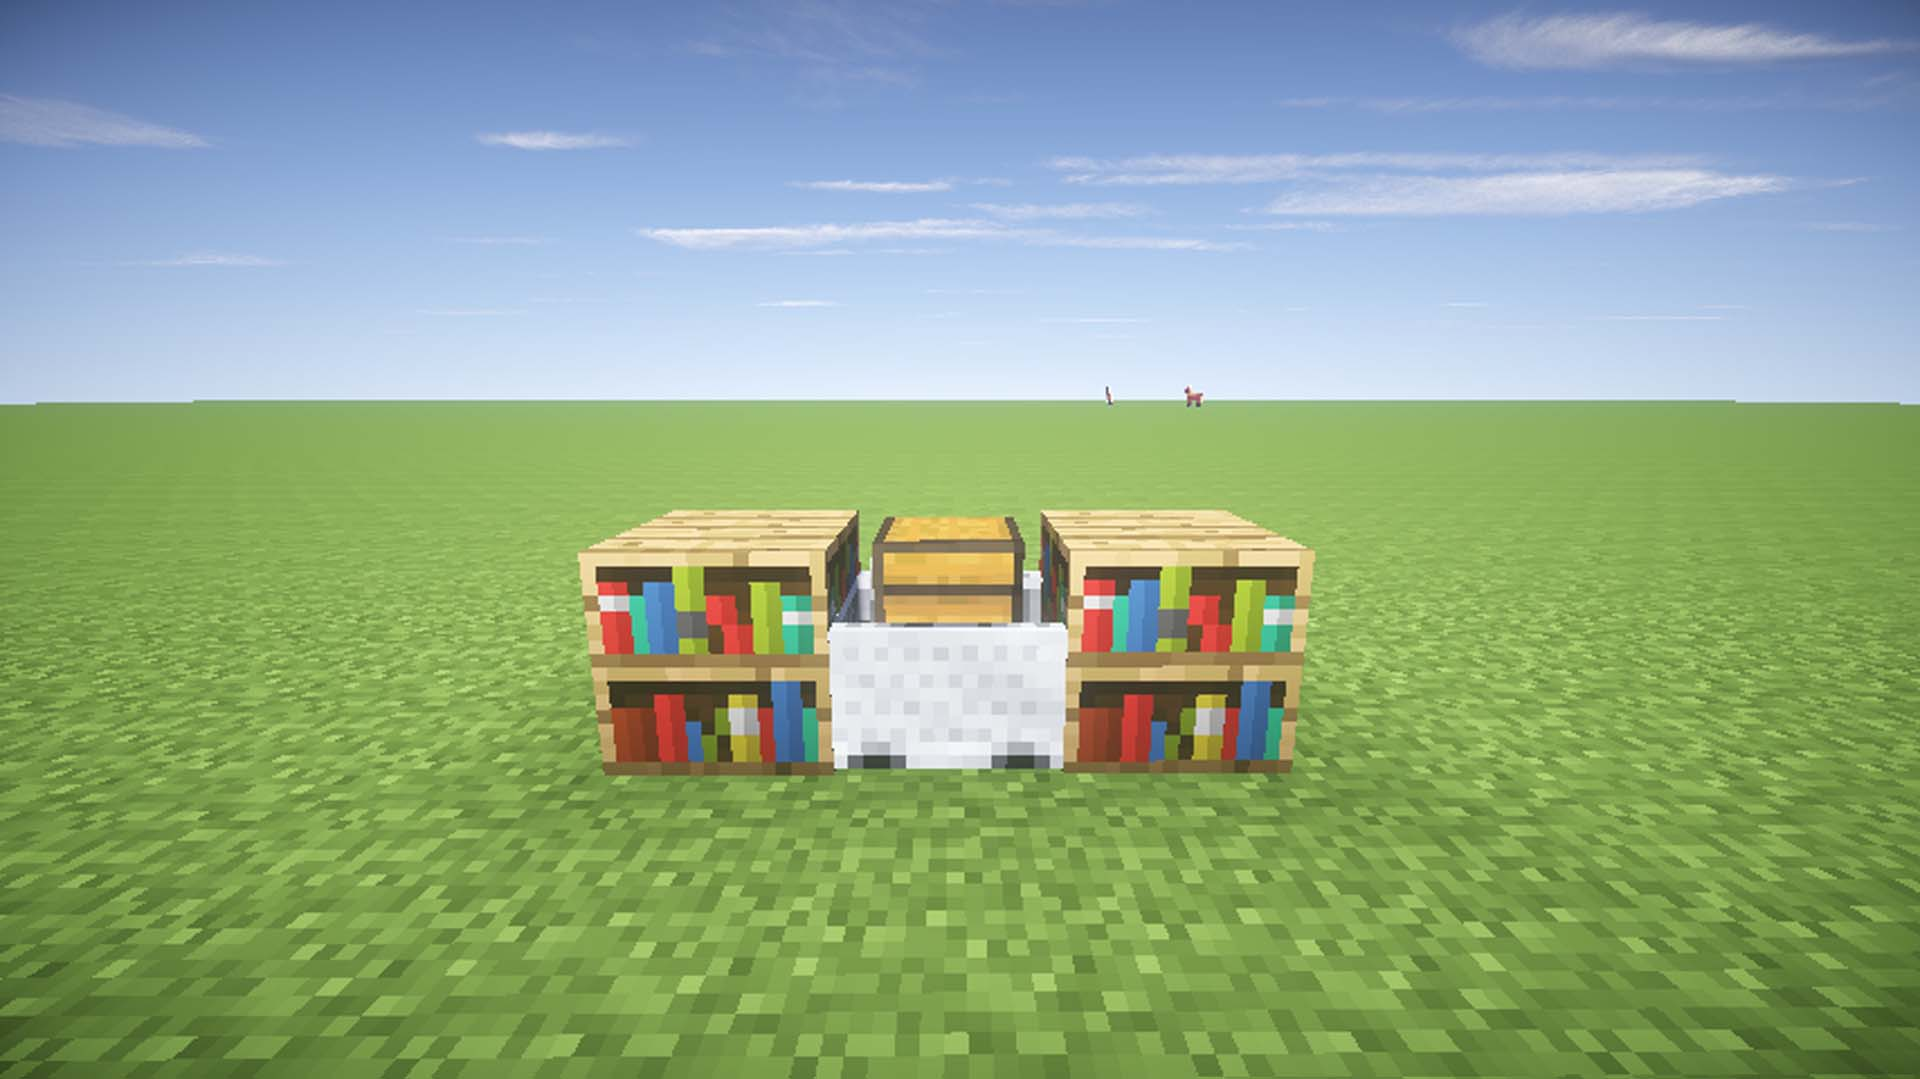 Superb img of Minecraft Hidden Chests How To Hide a Chest in Minecraft BC GB with #9D832E color and 1920x1079 pixels